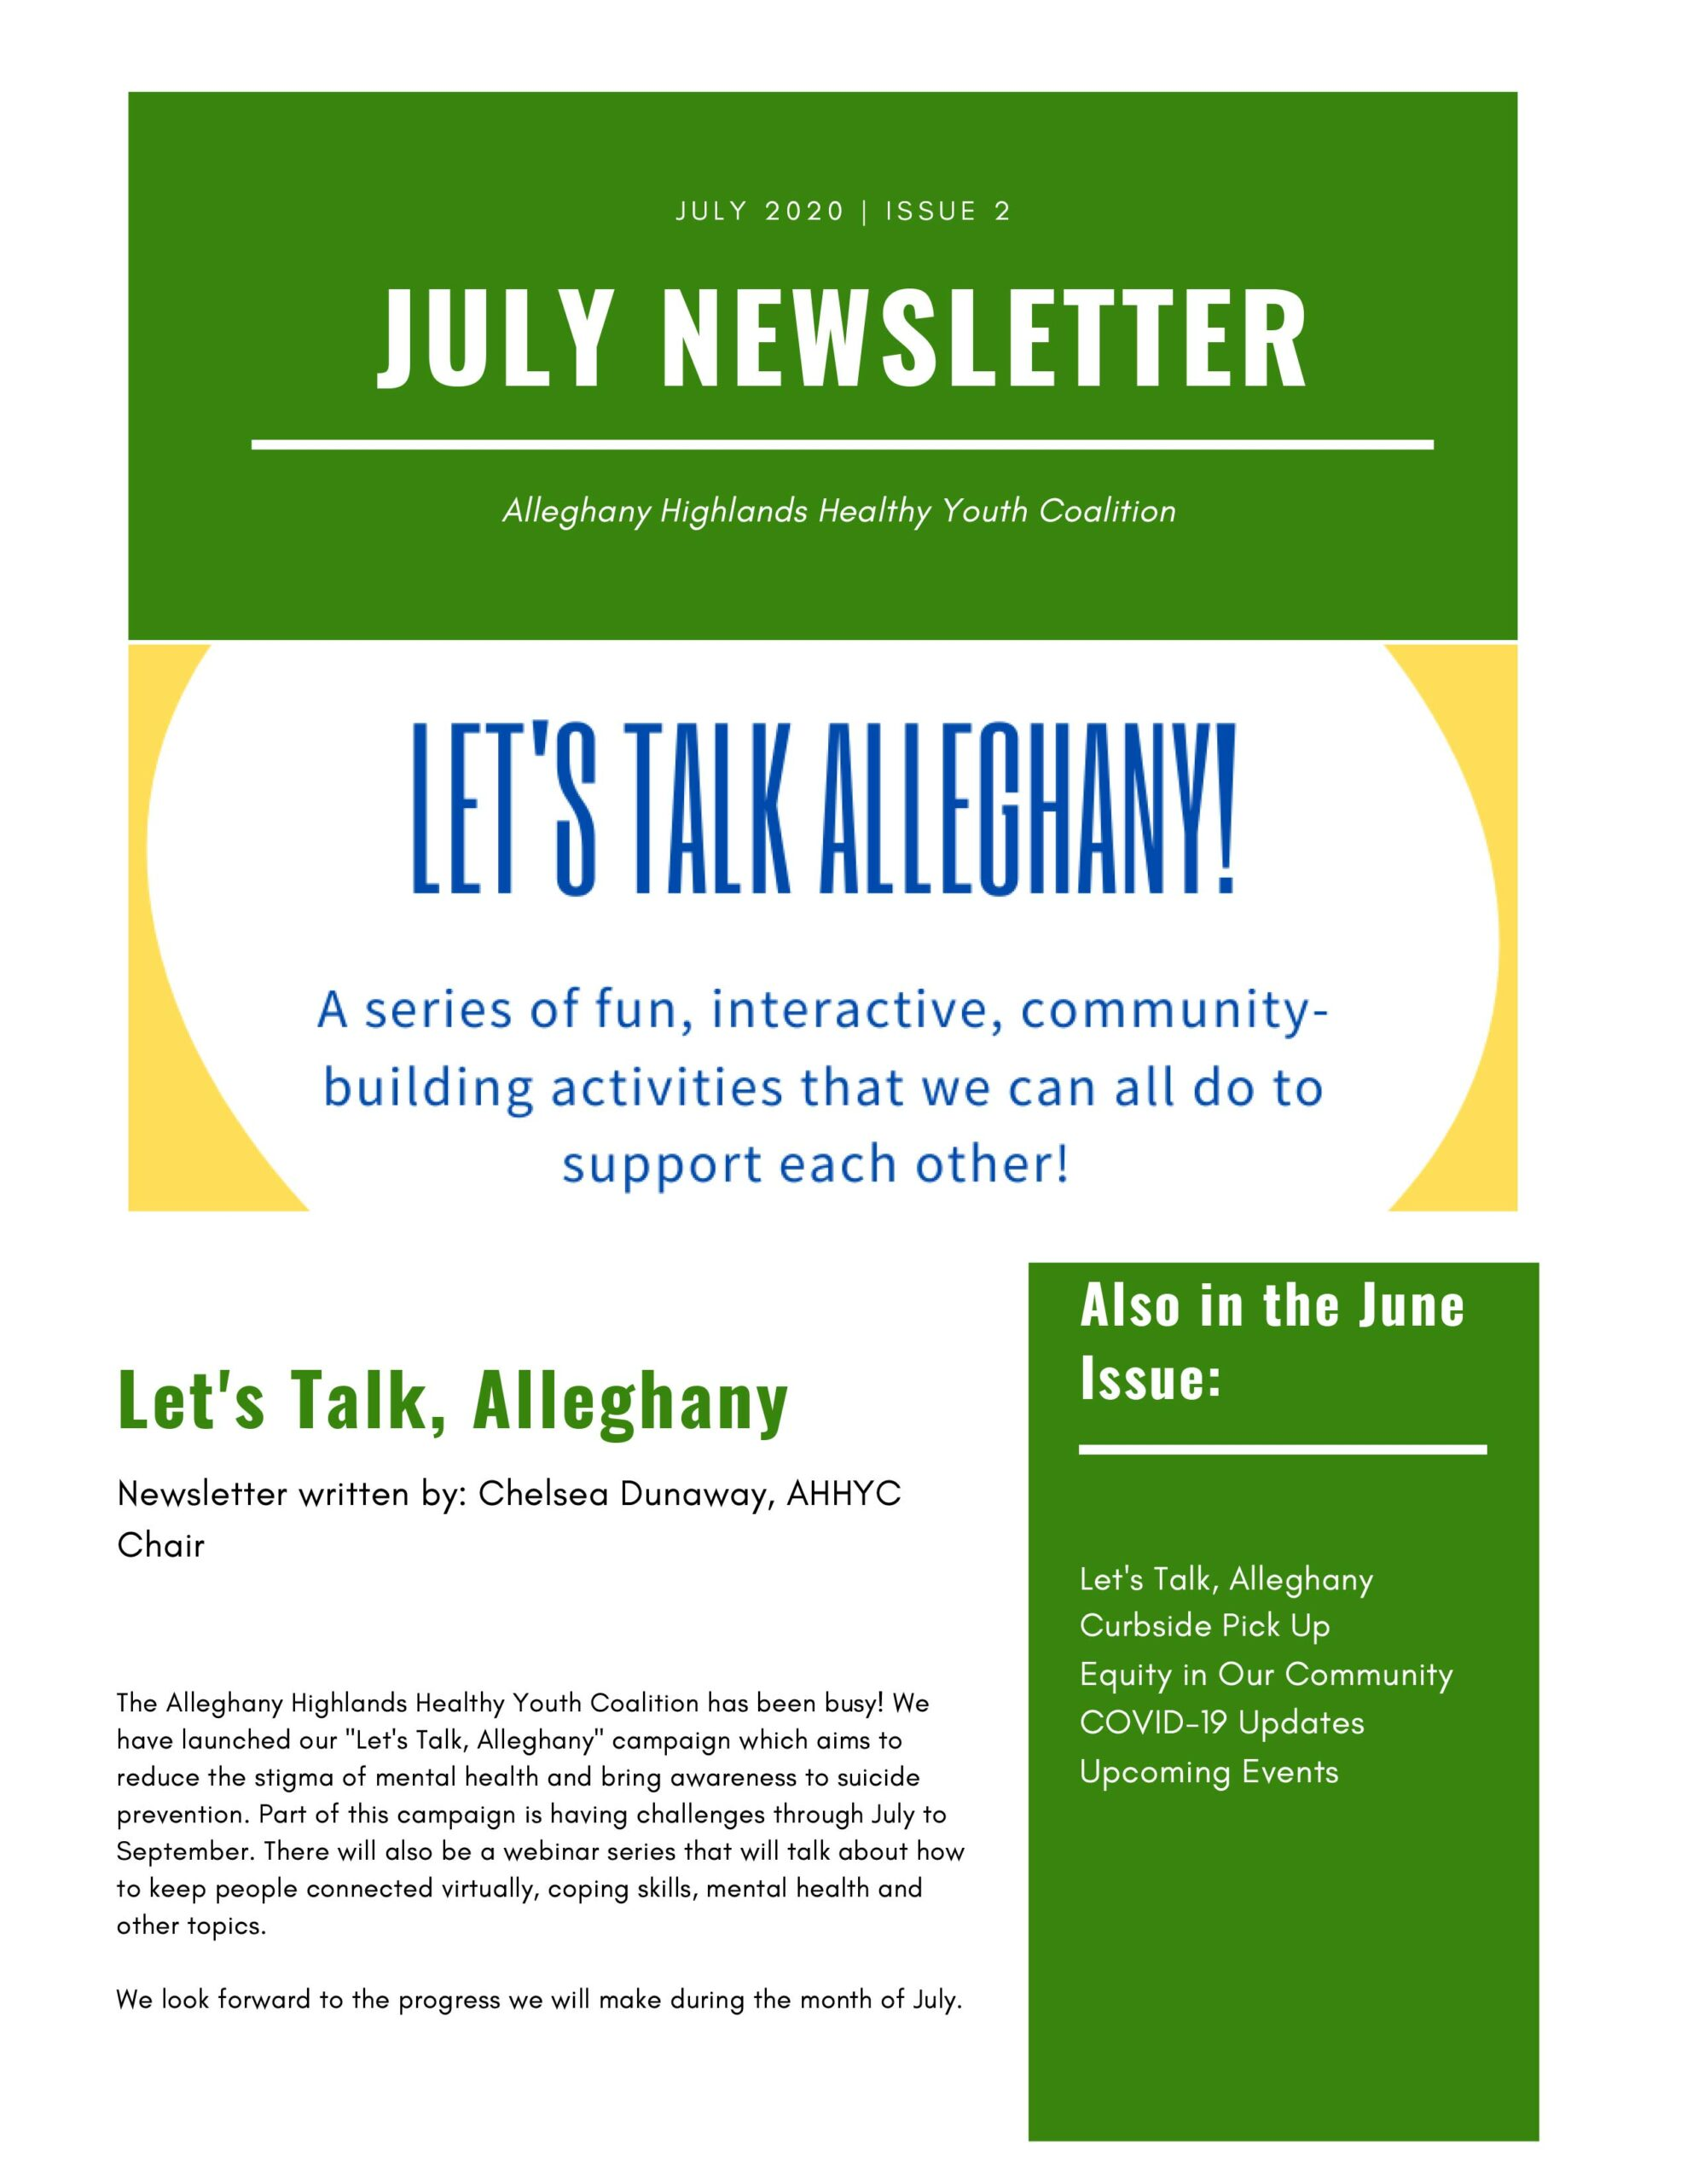 July Coalition Newsletter 1